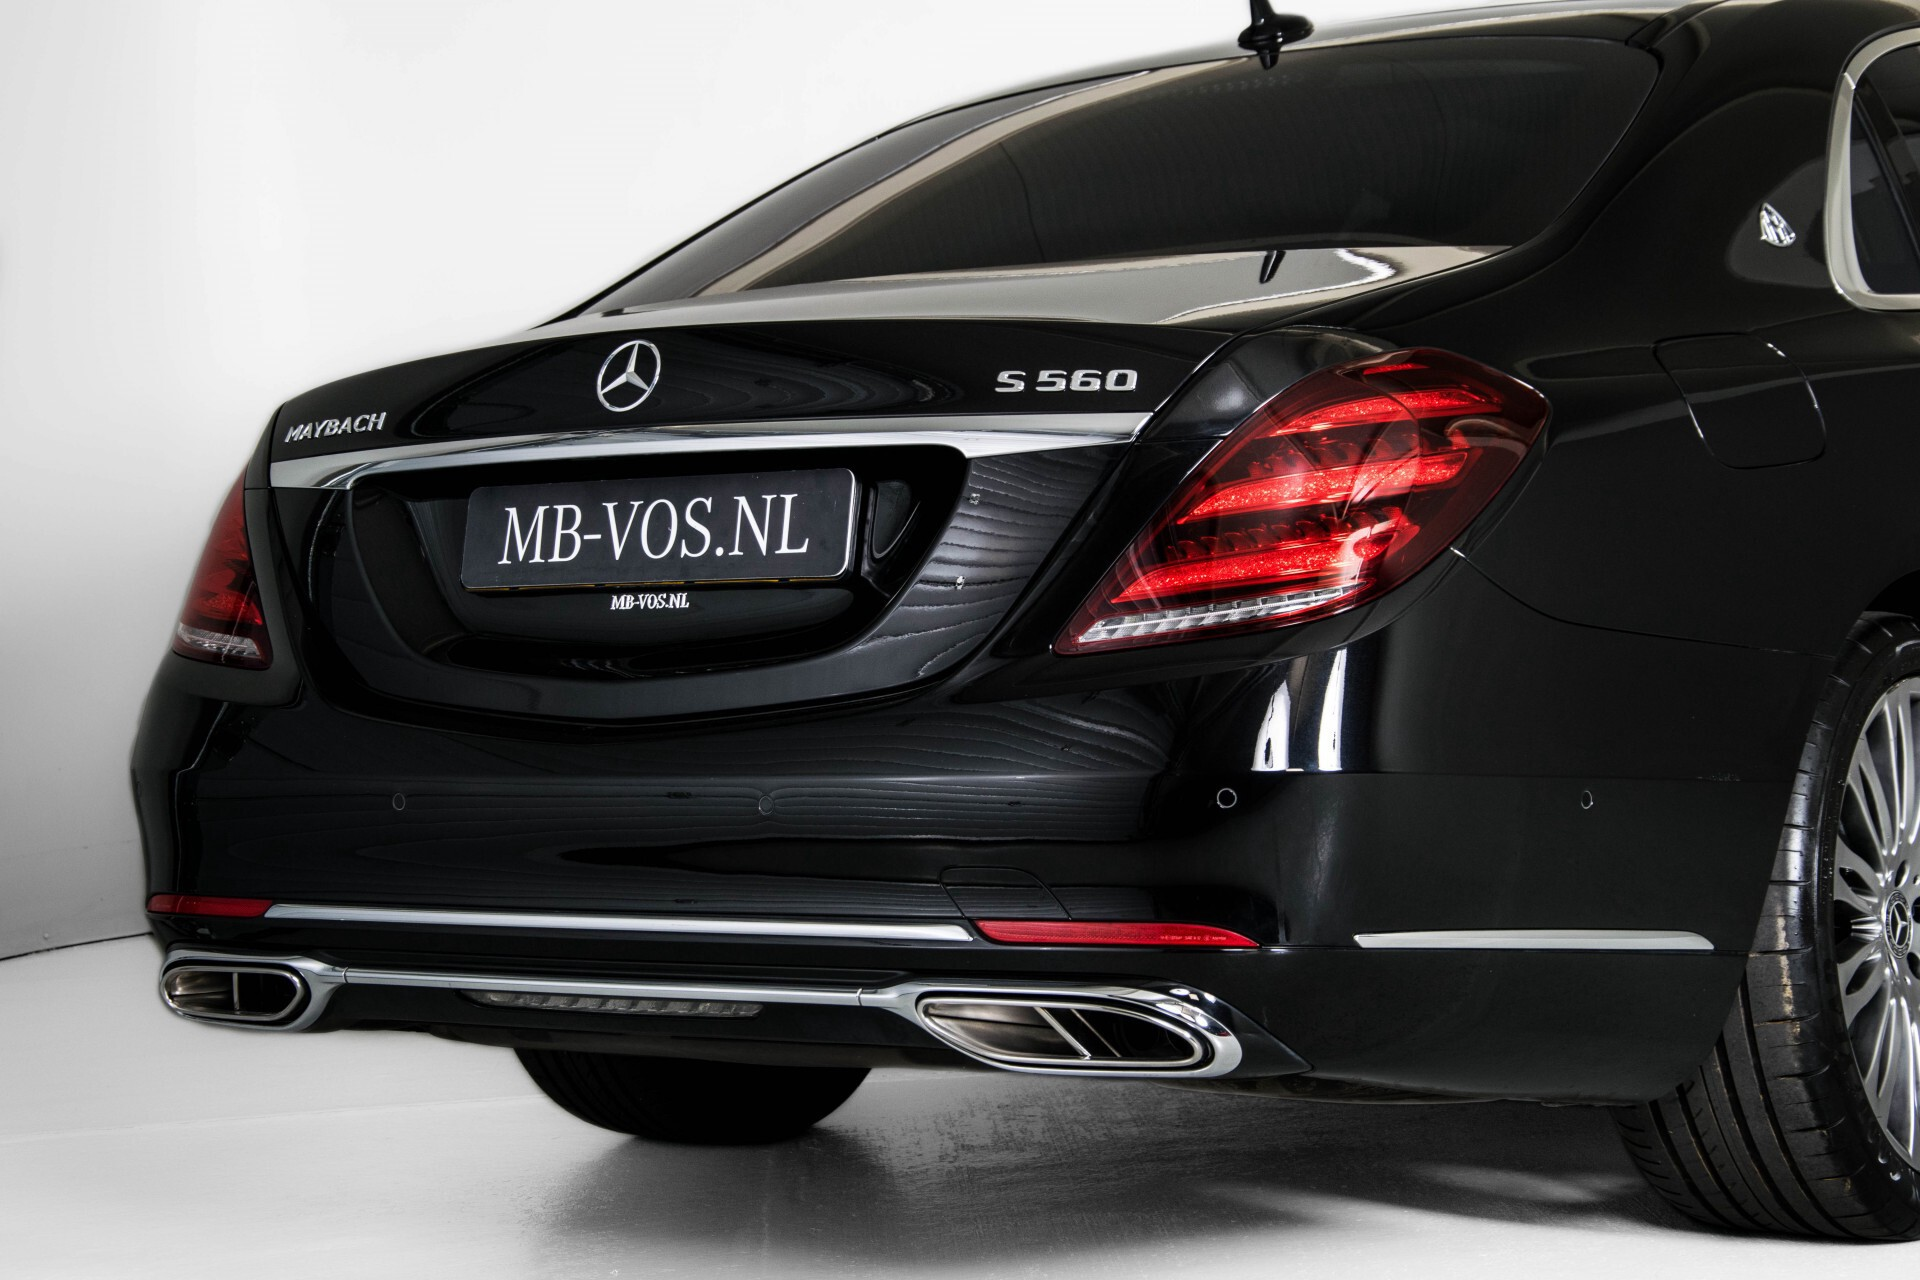 Mercedes-Benz S-Klasse 560 Maybach 4-M Designo First Class Full Options Aut9 Foto 85